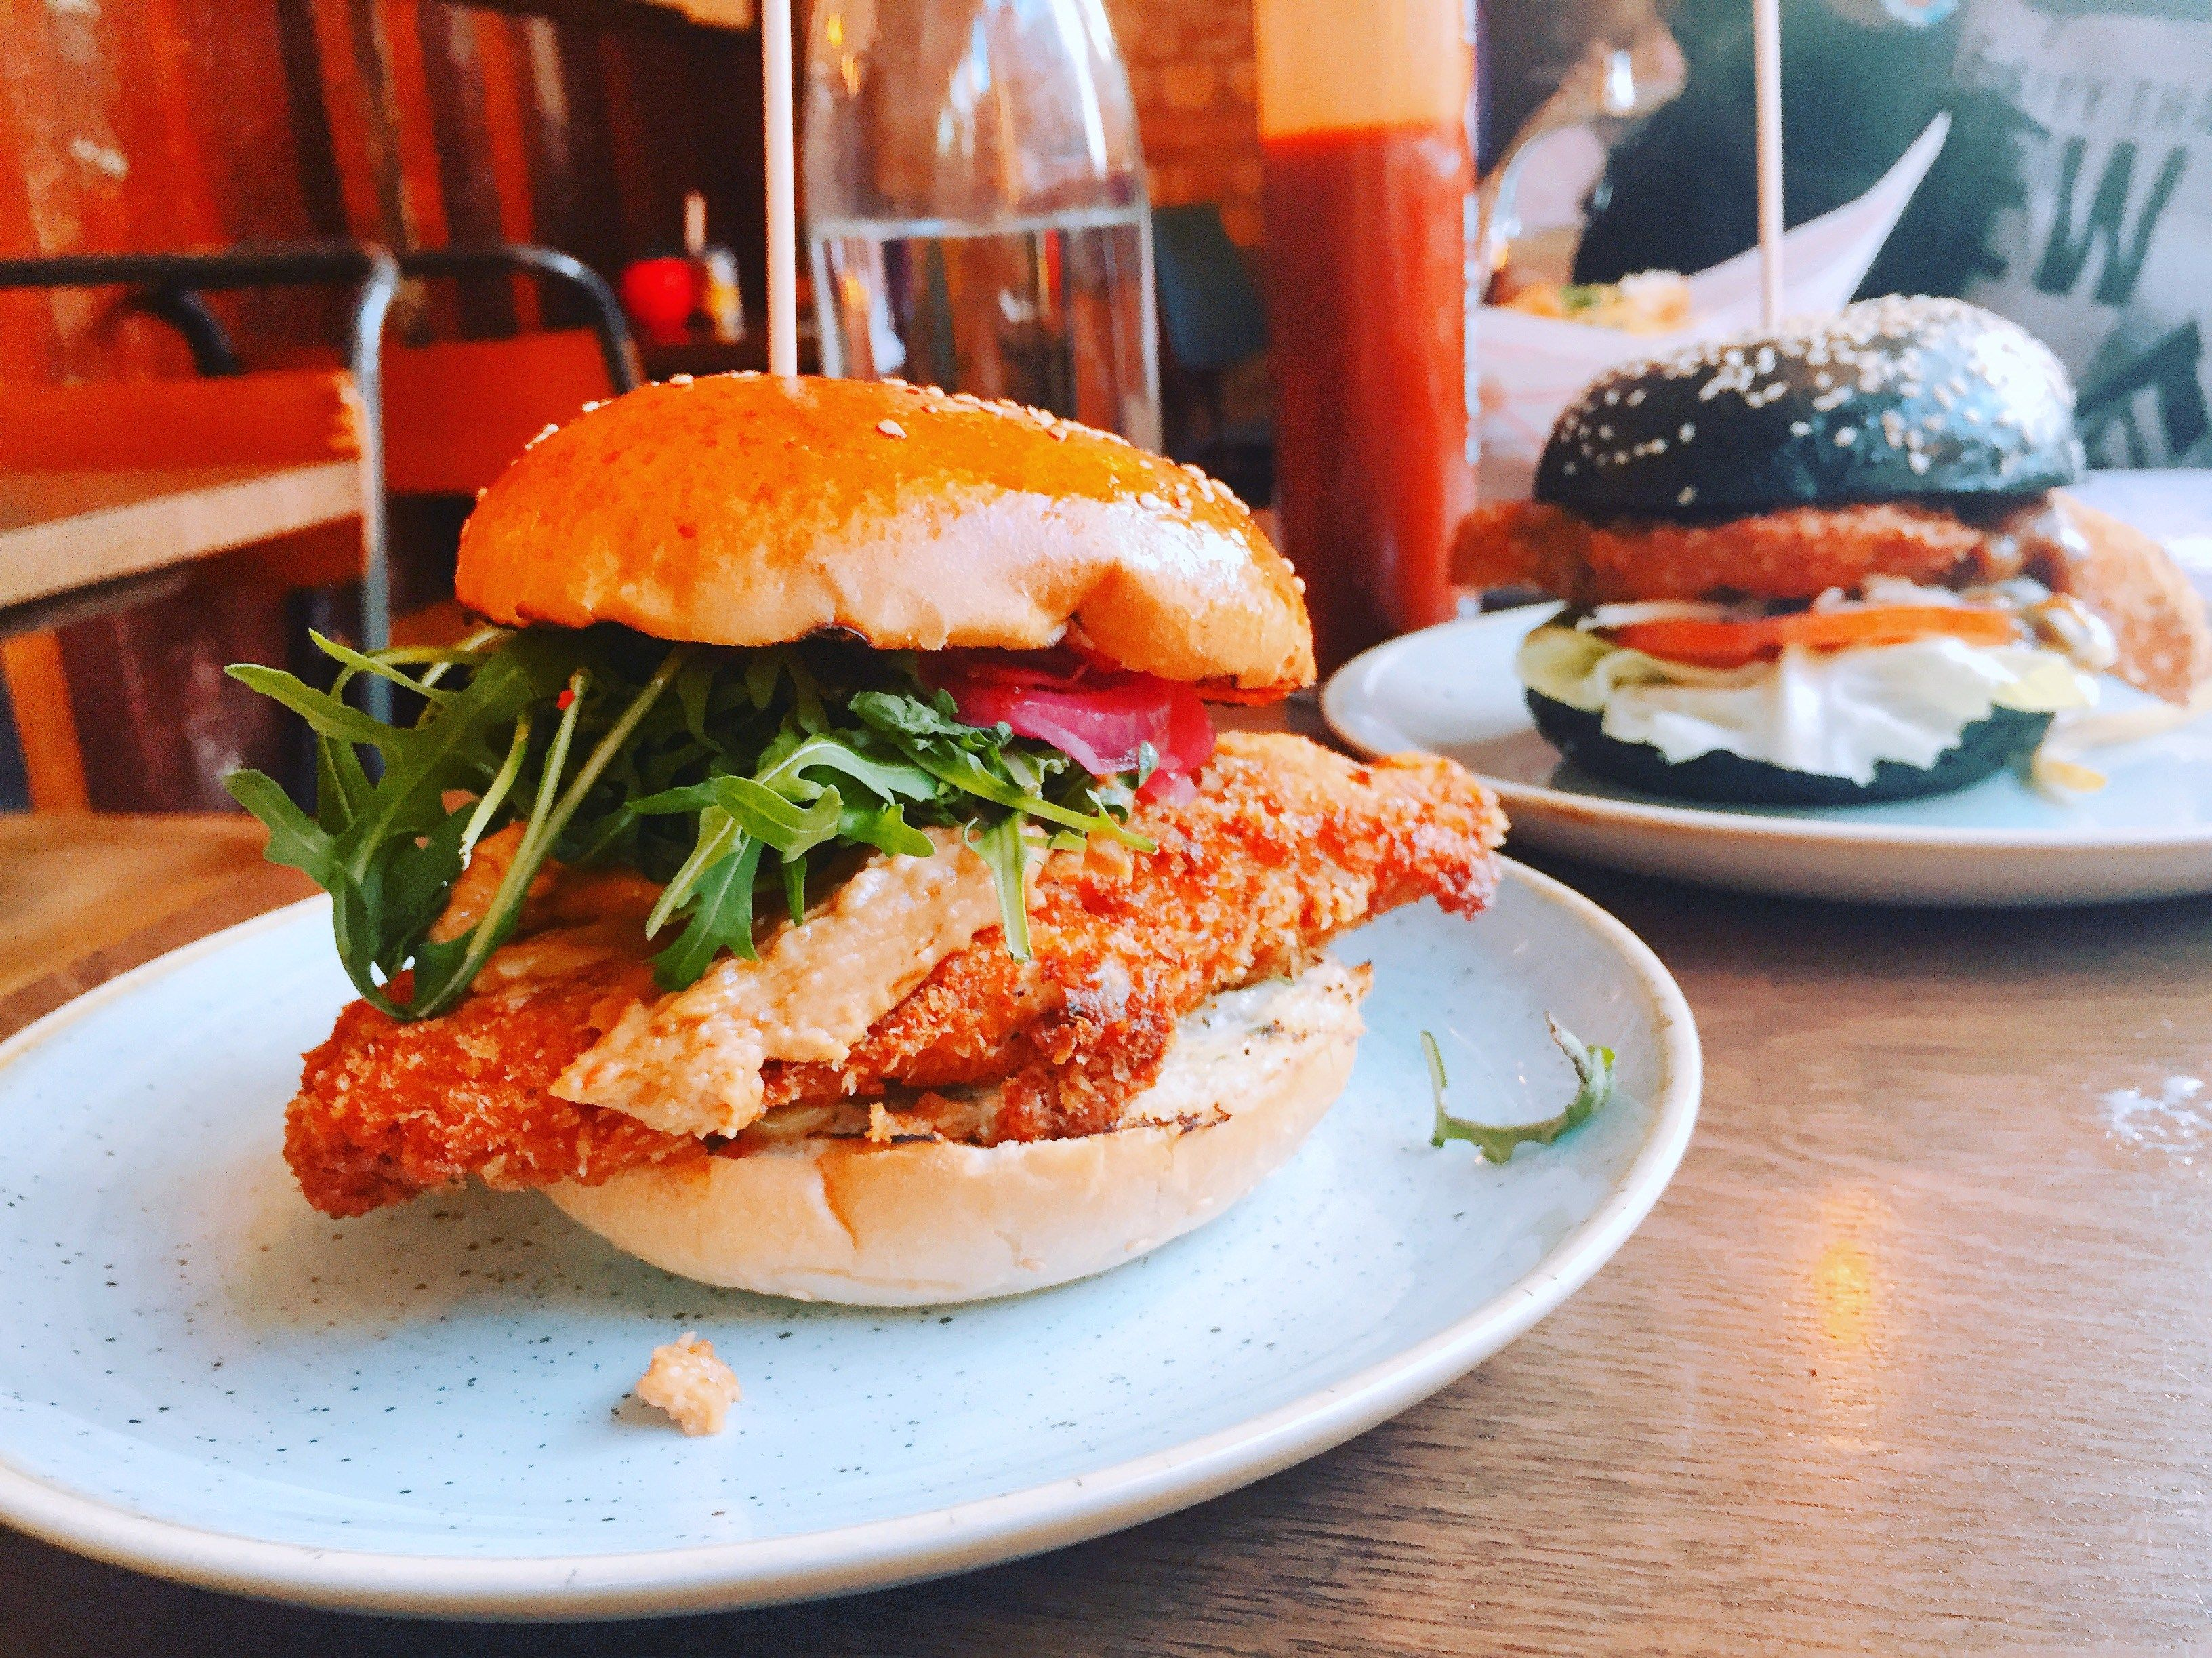 Halal Status Only The Japanese Panko Fried Chicken Is Halal You Can Order That With Any Burger Combo Not Just The London Food Restaurants Gbk Burger Burger